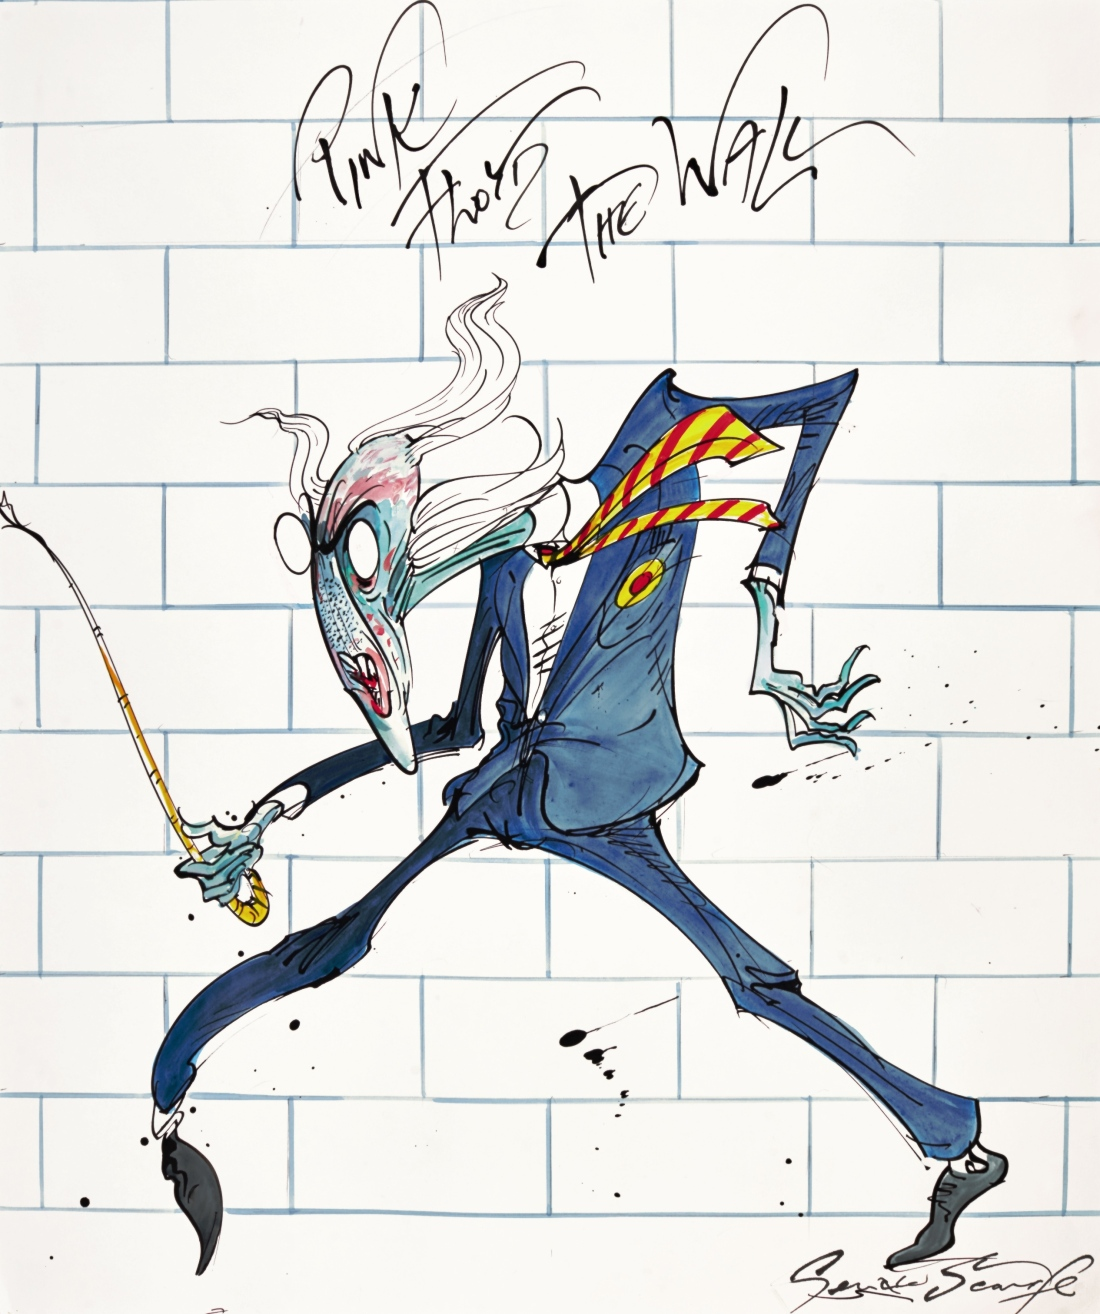 Lot 40, Gerald Scarfe, ' The Teacher'